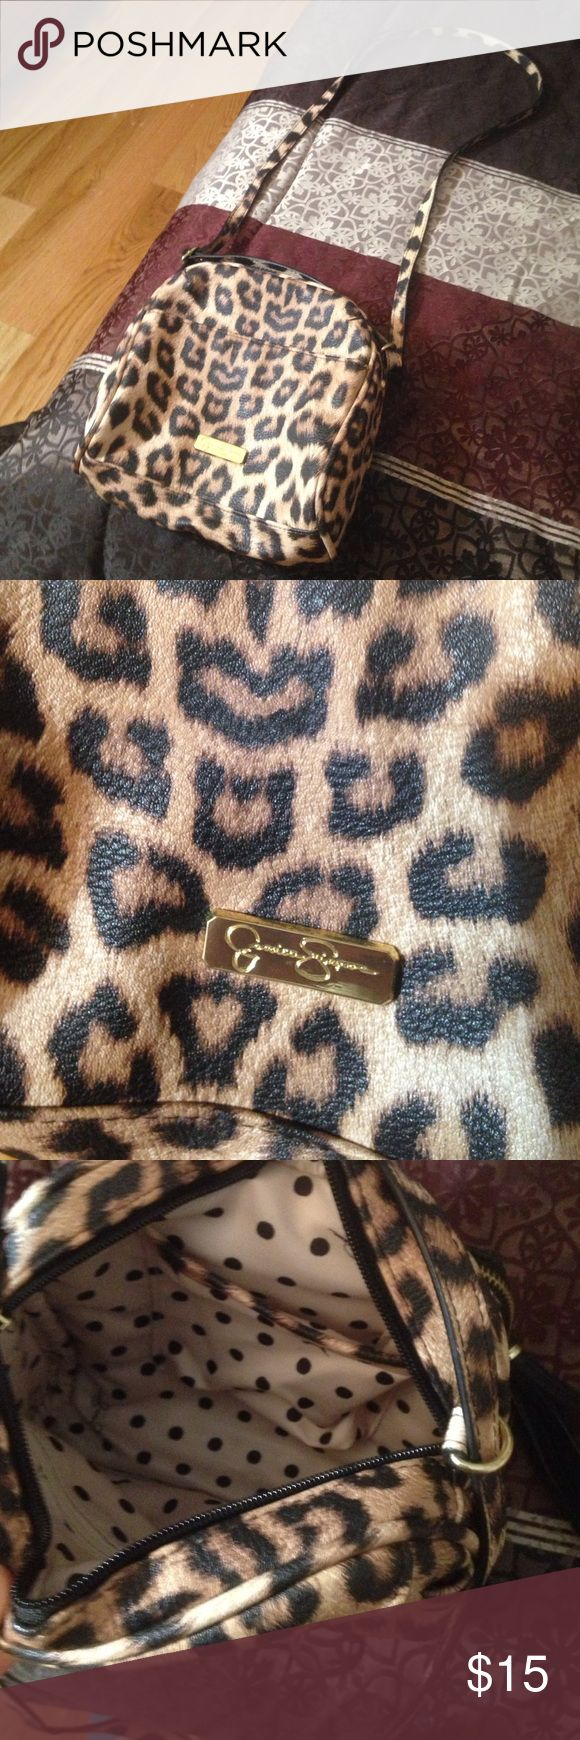 Jessica Simpson small cheetah purse Small Jessica Simpson cheetah purse. Like new, never used. Polka dots in the inside. Jessica Simpson Bags Shoulder Bags